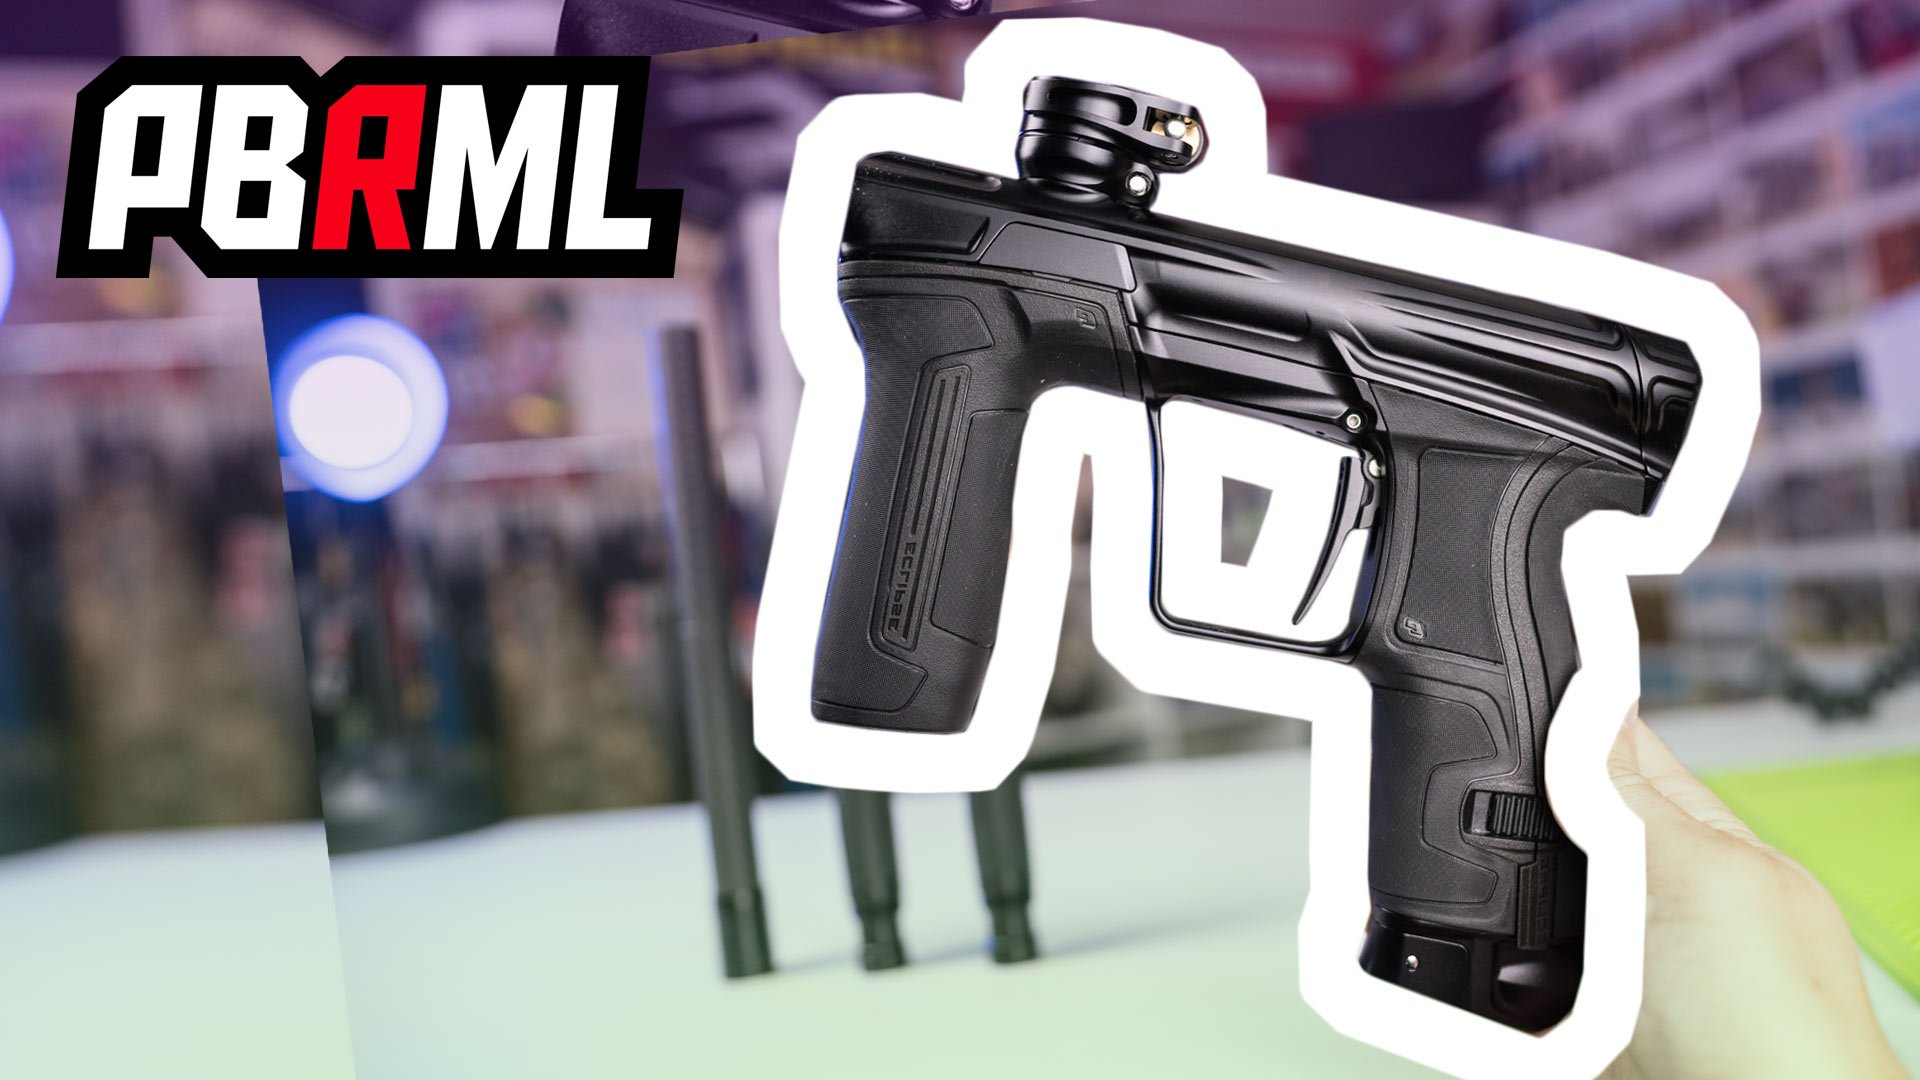 Planet Eclipse Cs2 Review The Best Paintball Gun Ever Ruined My Life